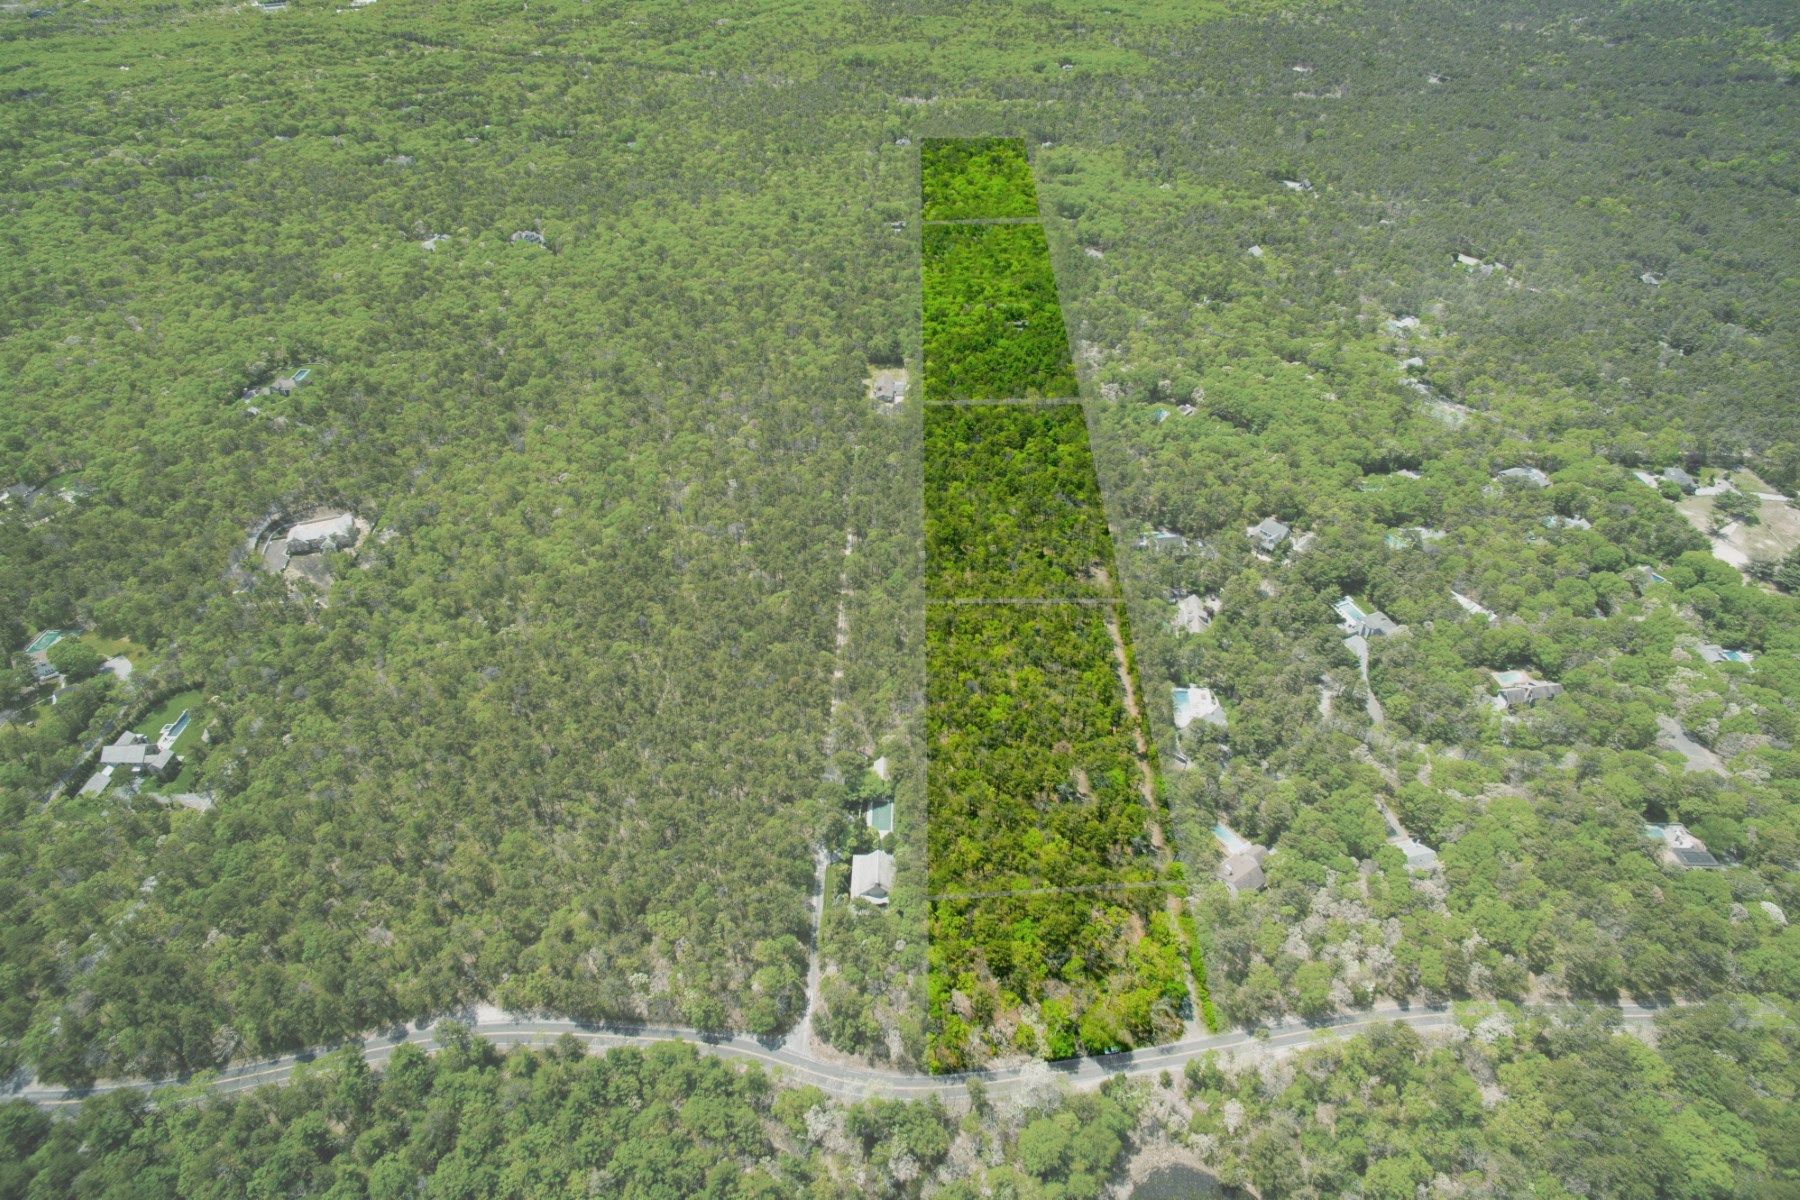 Land for Sale at THREE 3 ACRE LOTS WITH ROOM FOR TENNIS 60 Two Holes Of Water Road, East Hampton, New York, 11937 United States